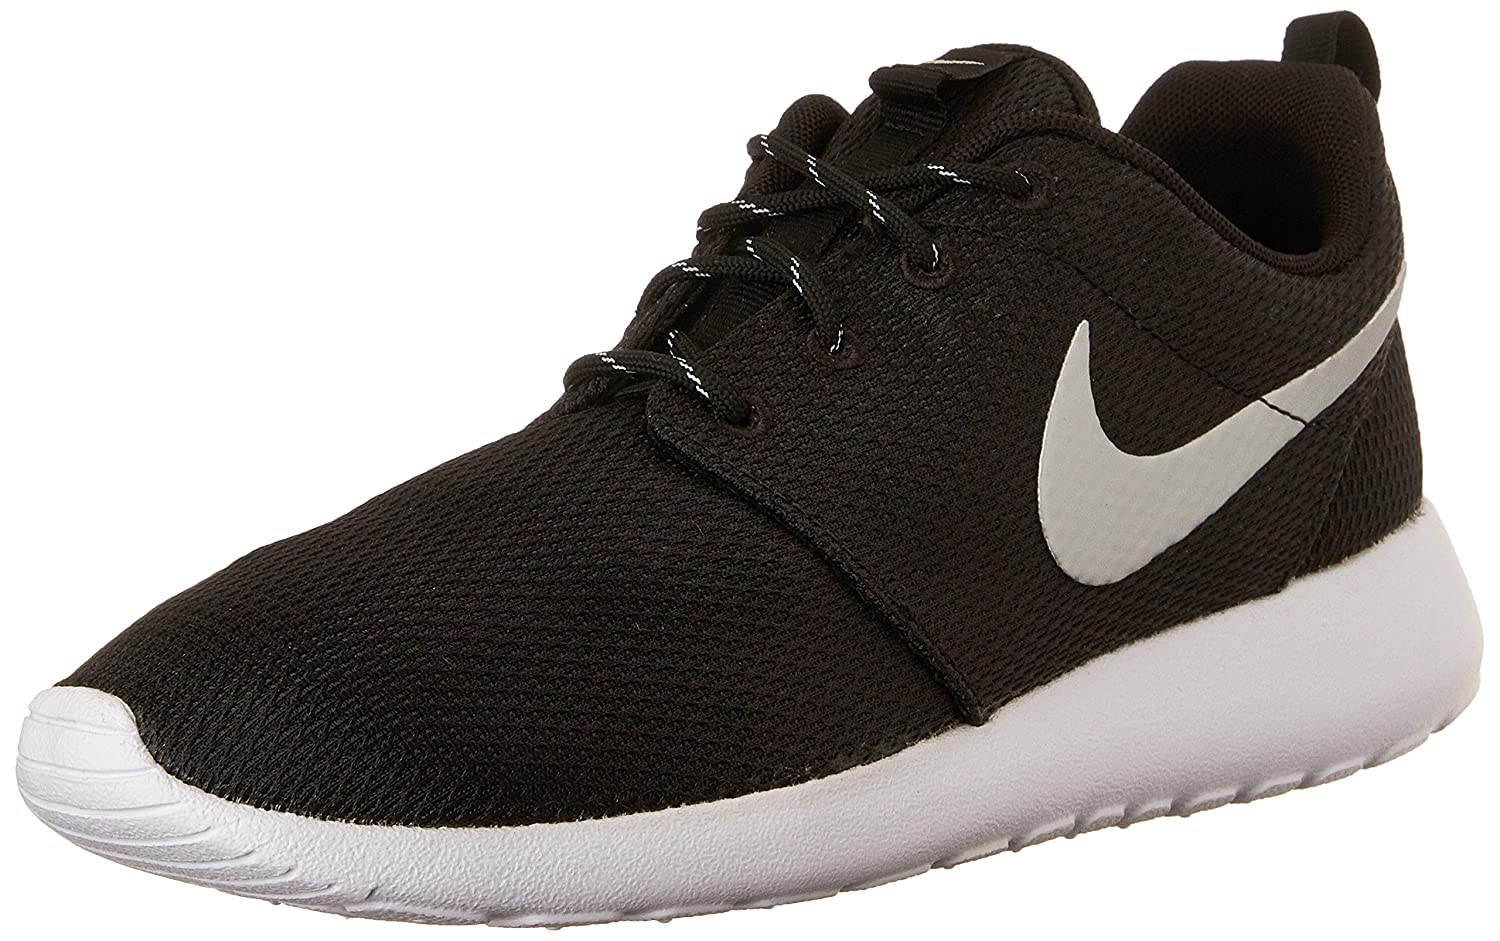 5e9f5db72986 Amazon.com  Nike Womens Roshe One Running Shoe Black Metallic  Platinum White (8.5)  NIKE  Sports   Outdoors